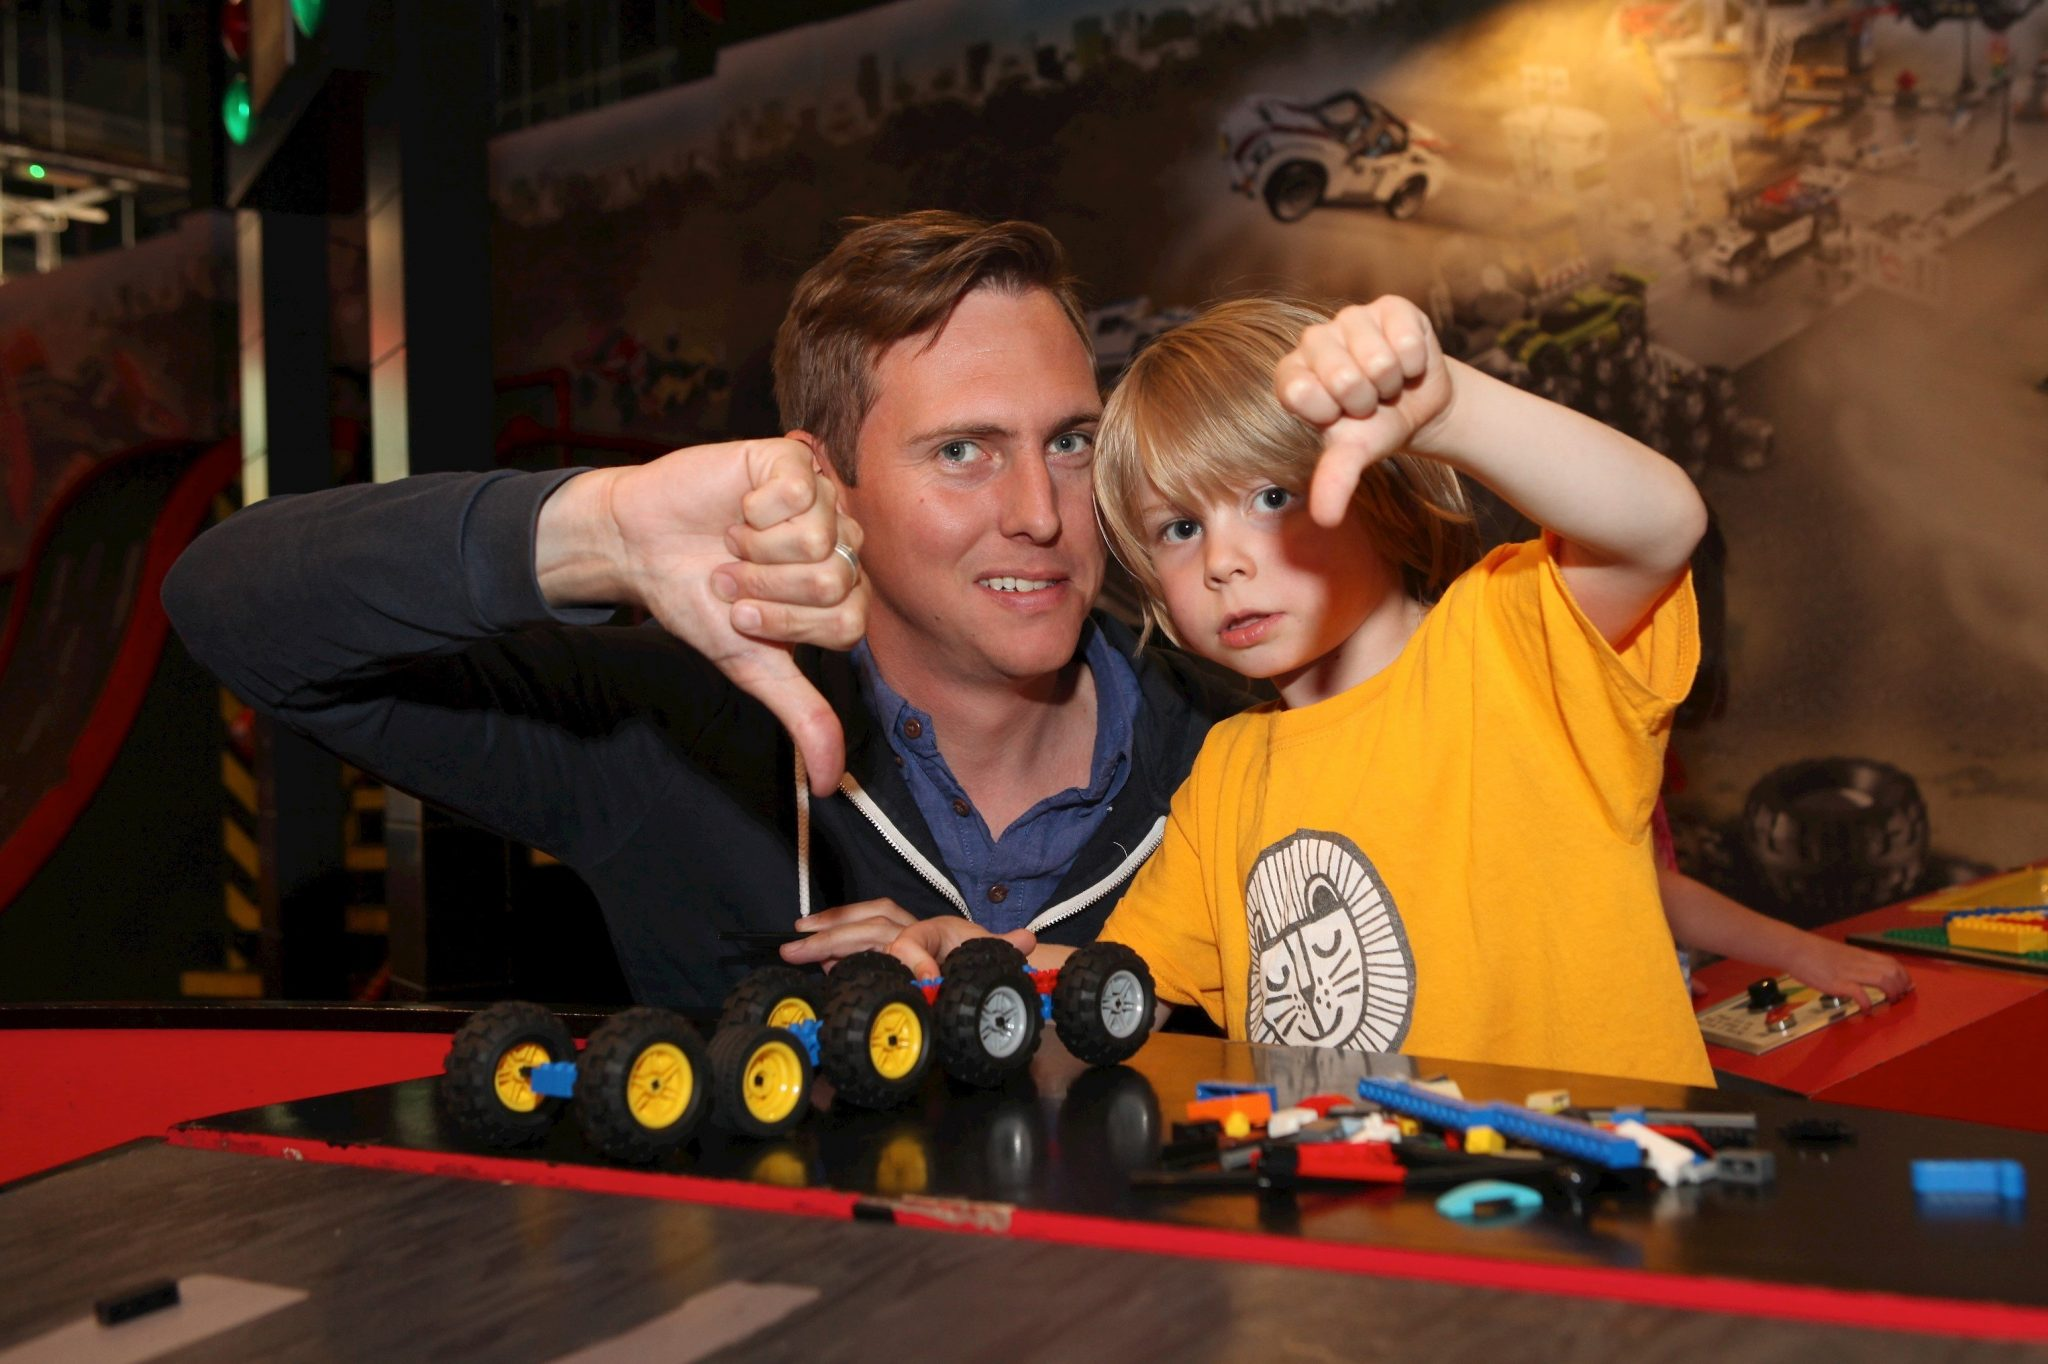 Dad David Vincent Field and son Christopher give footie mad mum a thumbs down and happily bag free entry to Legoland Manchester